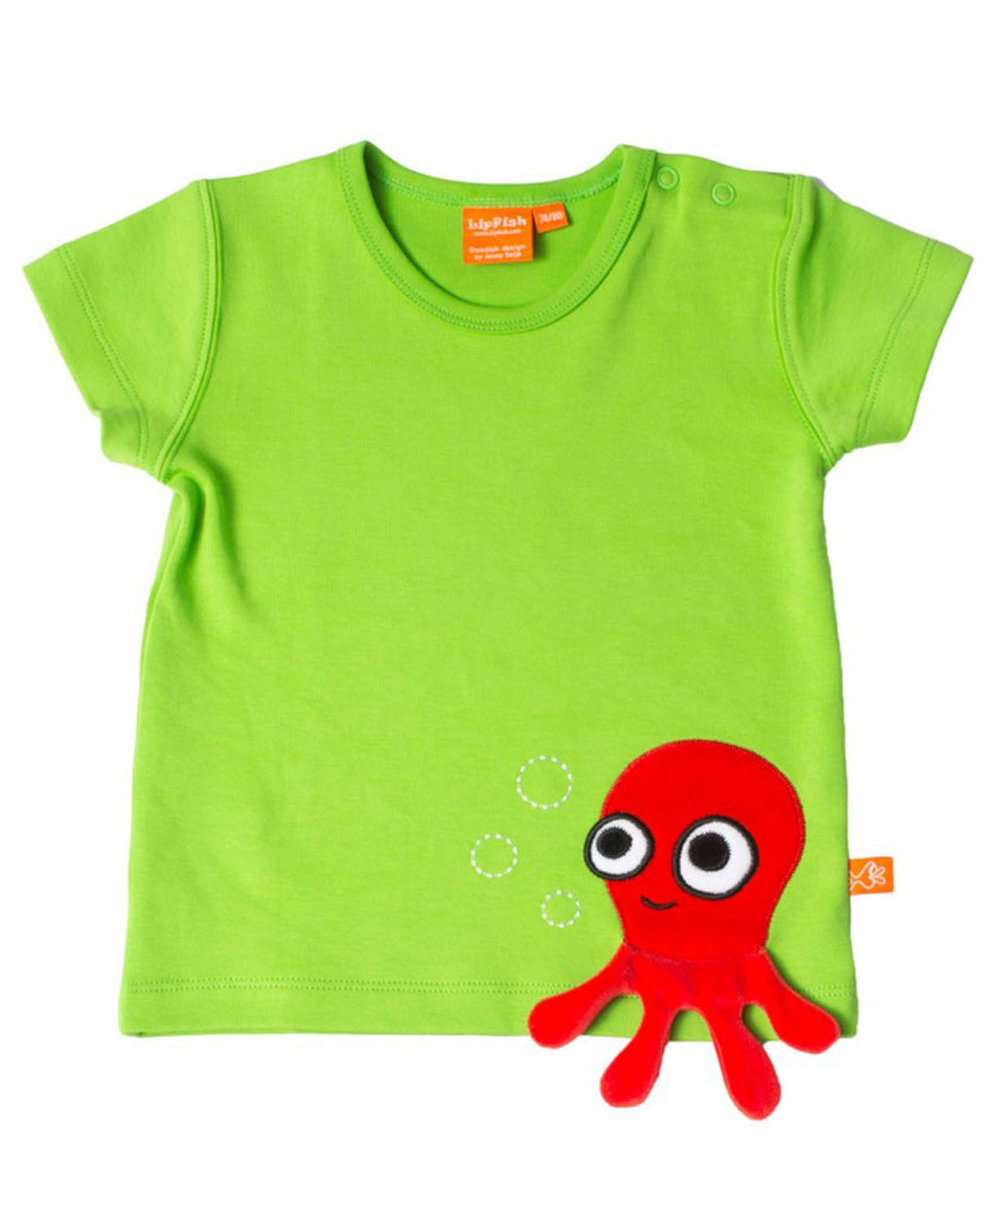 Lipfish-green-octopus-unisex-kids-t1500.jpg